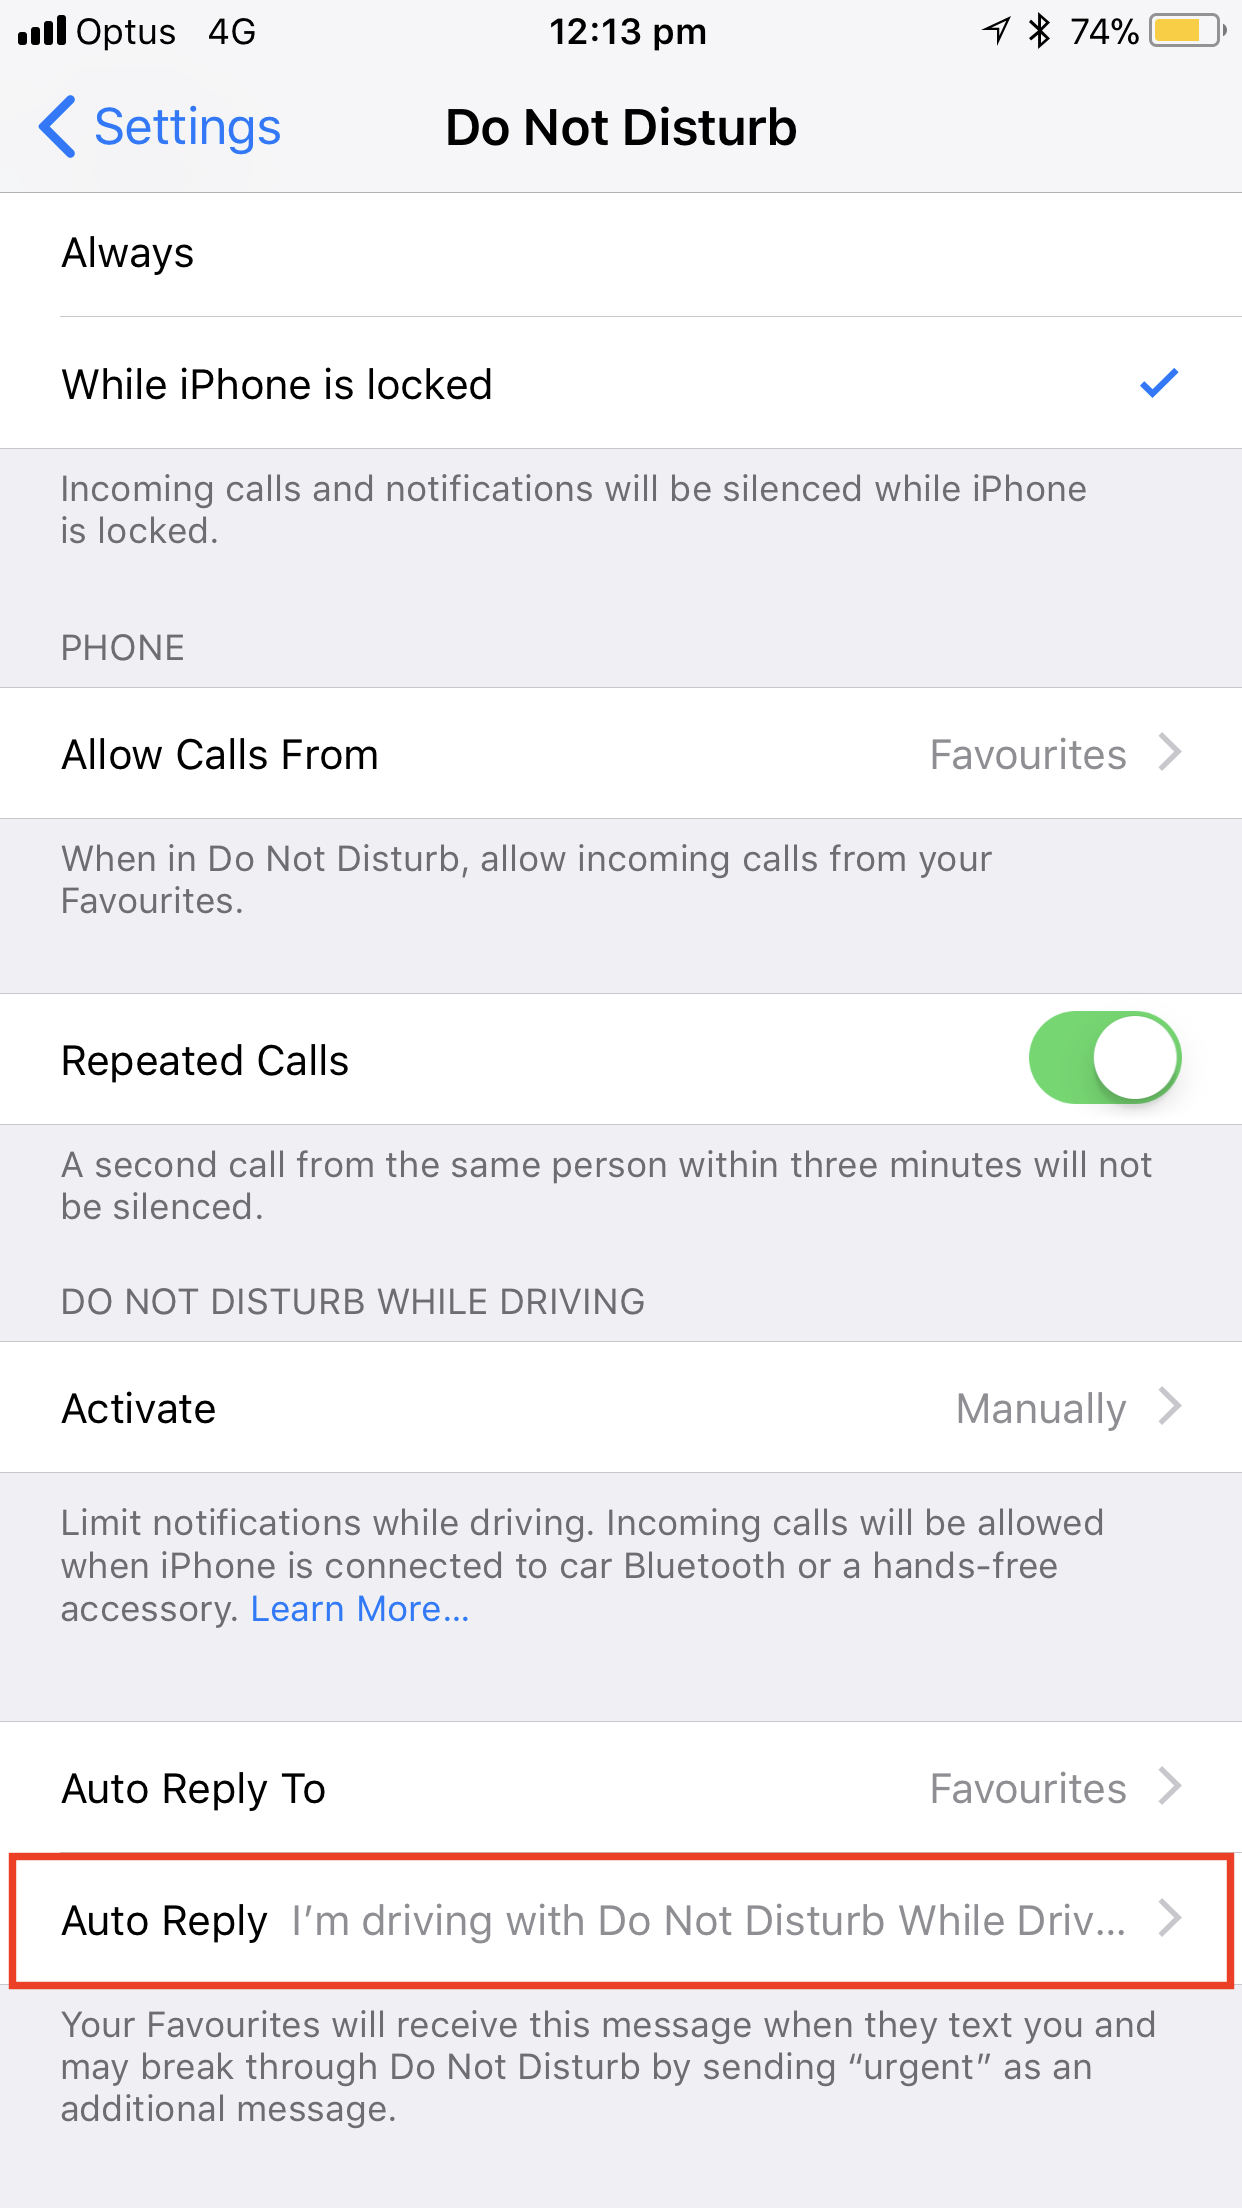 How to customize 'Do Not Disturb While Driving' response on